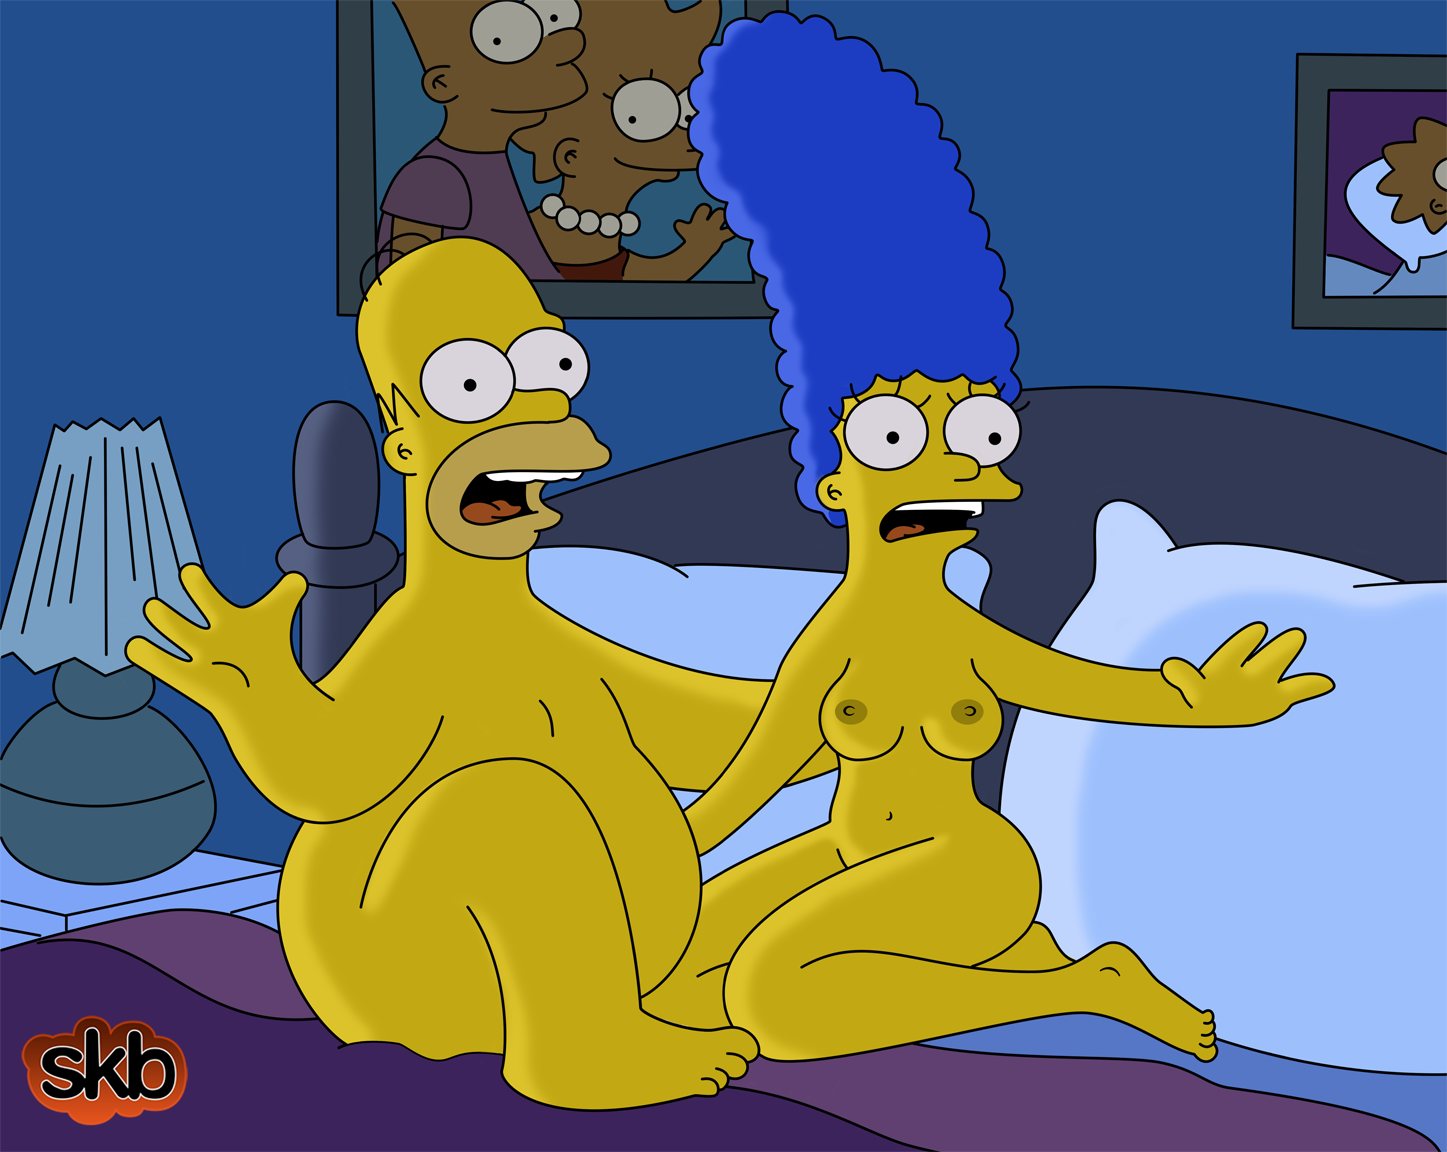 Not present. Nude pics of Marge Simpson good idea